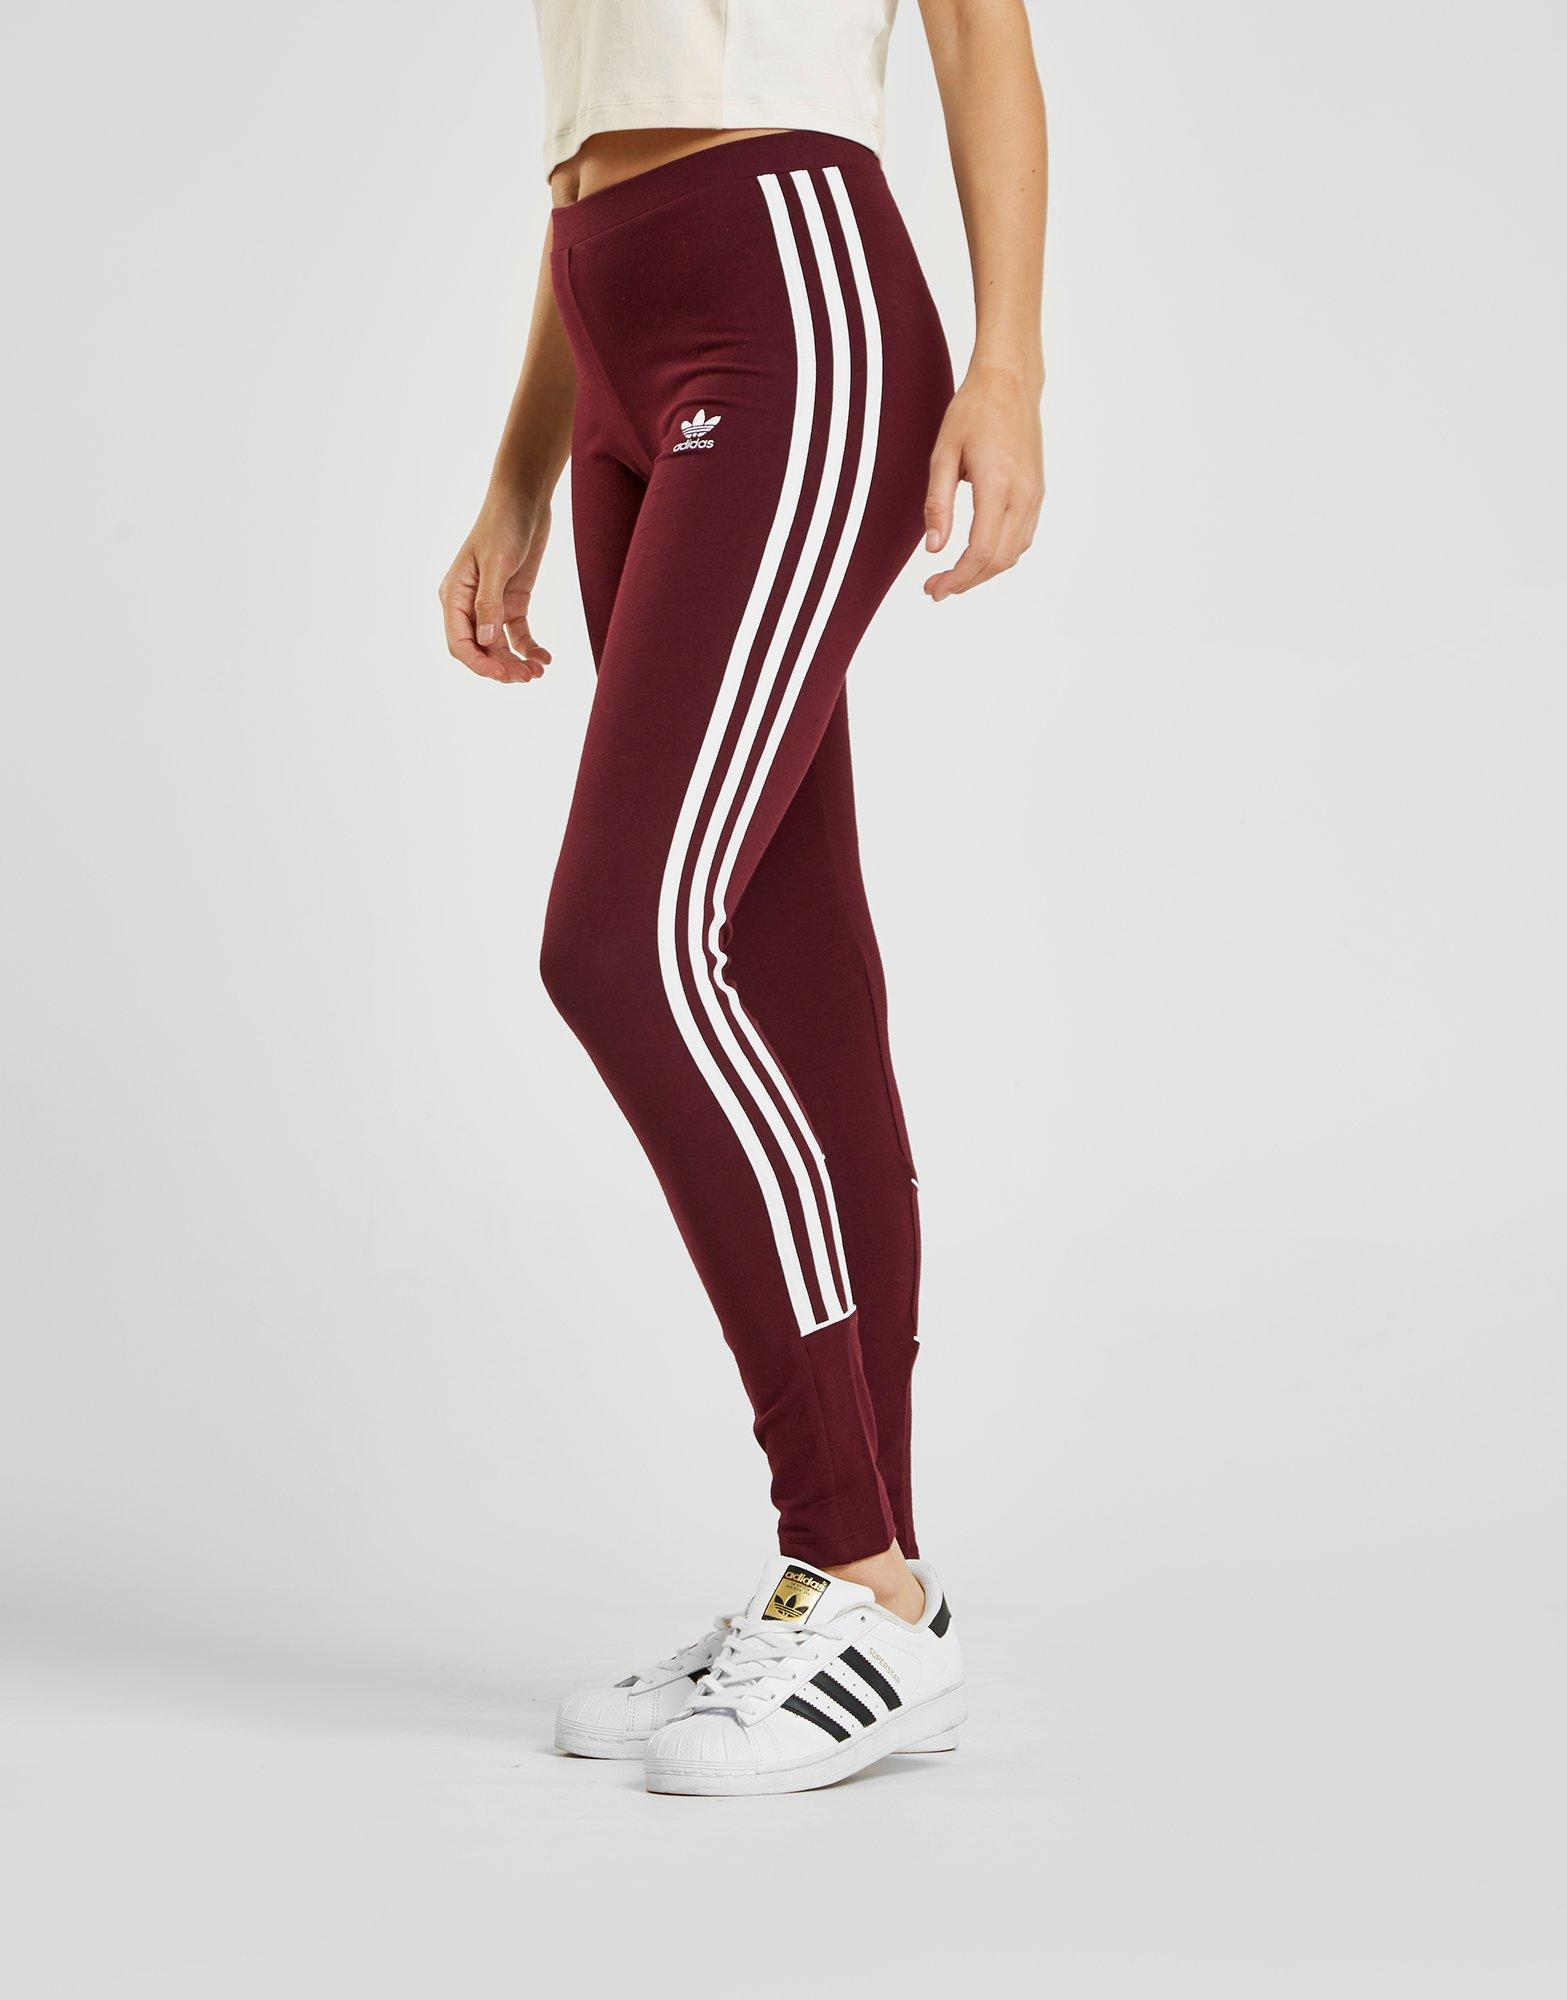 0e62e8fc1fa adidas Originals 3-stripes Piping Leggings in Red - Lyst